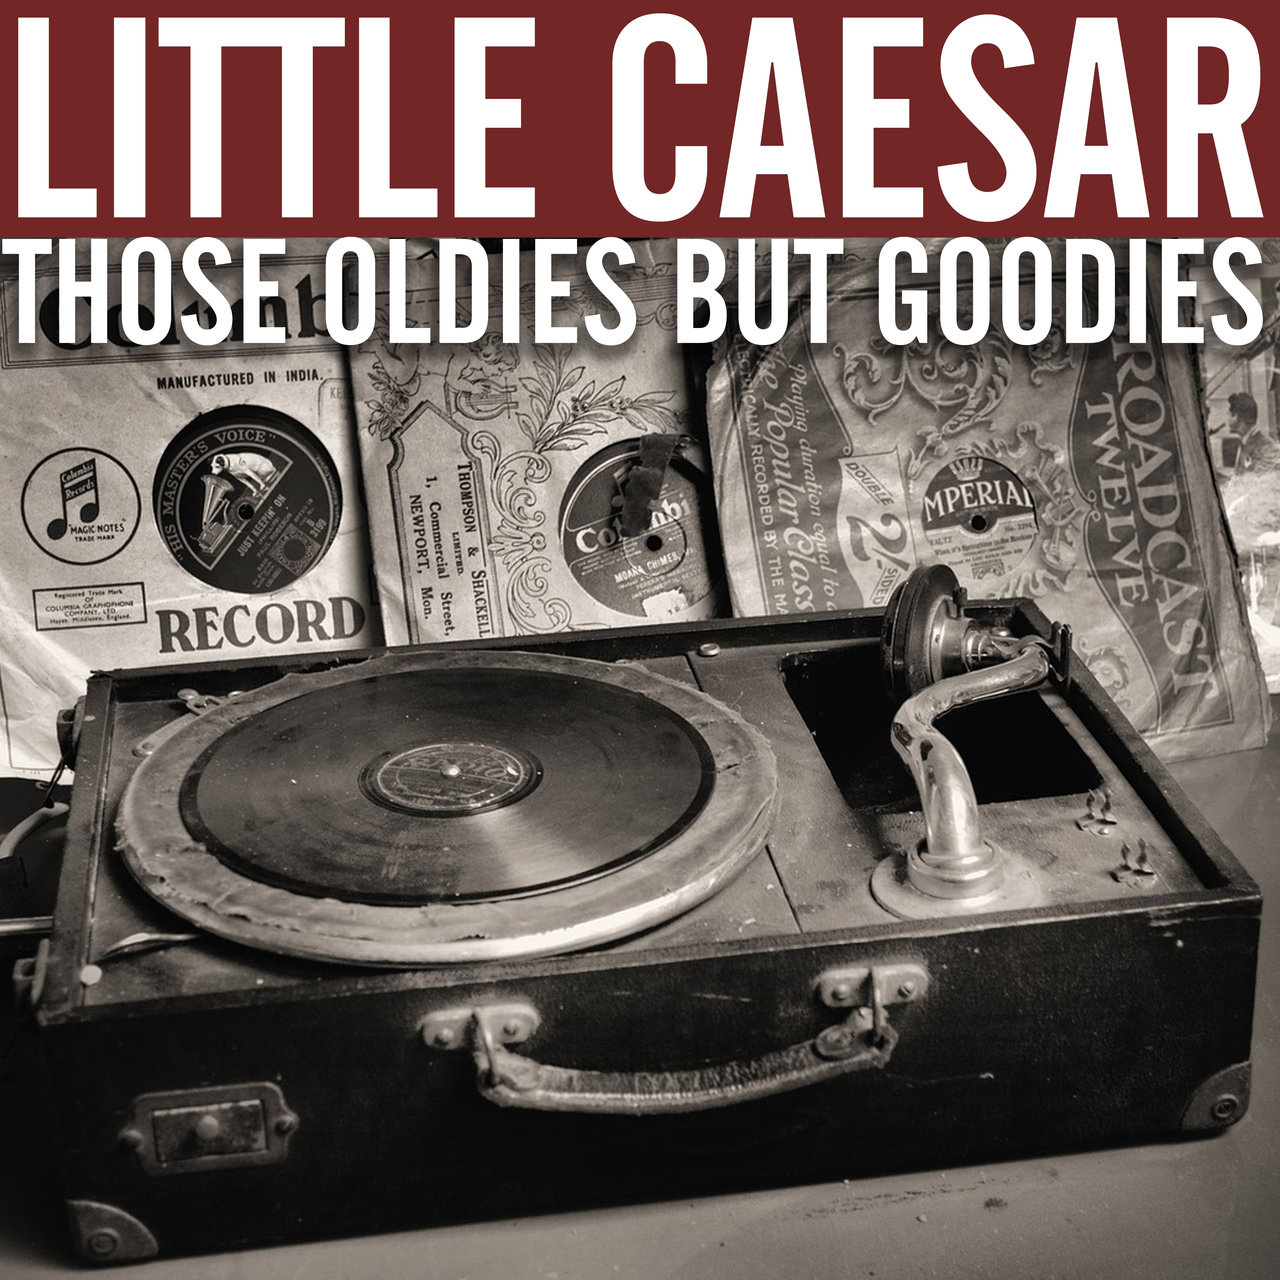 Listen to Those Oldies But Goodies by Little Caesar on TIDAL